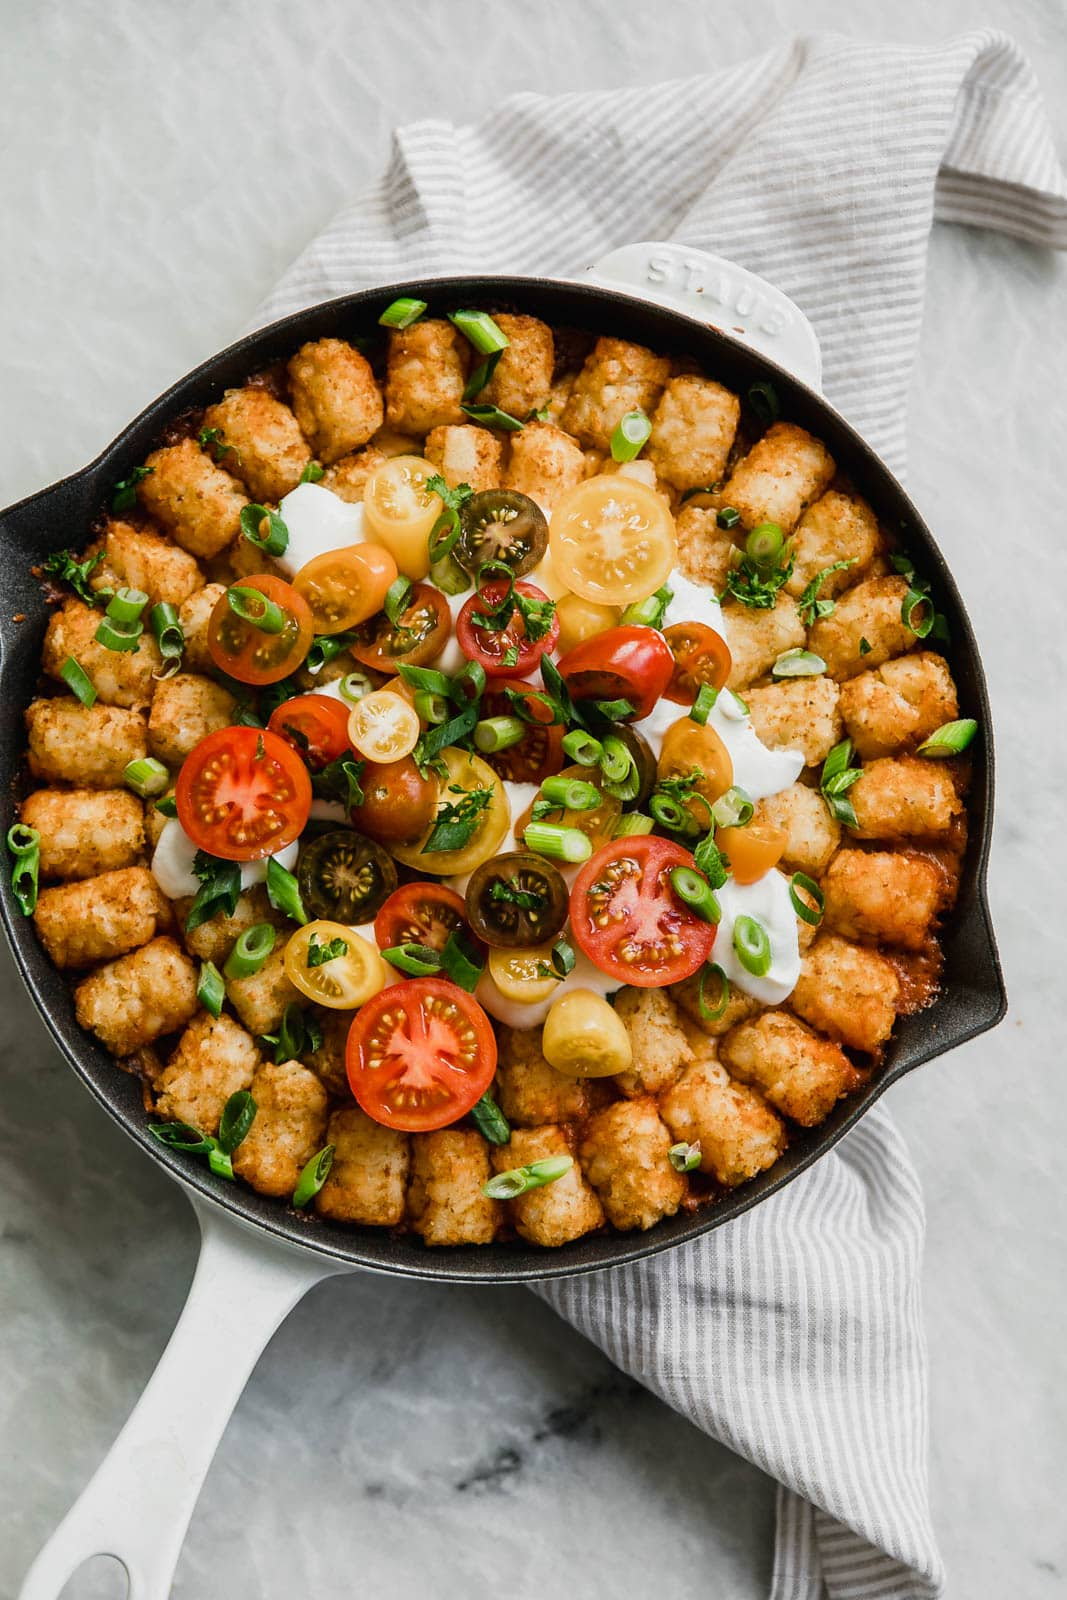 Cheeseburger Tater Tot Casserole: tastes just like a cheeseburger, topped with gooey cheese and a layer of crispy tater tots. Perfect for the Superbowl!